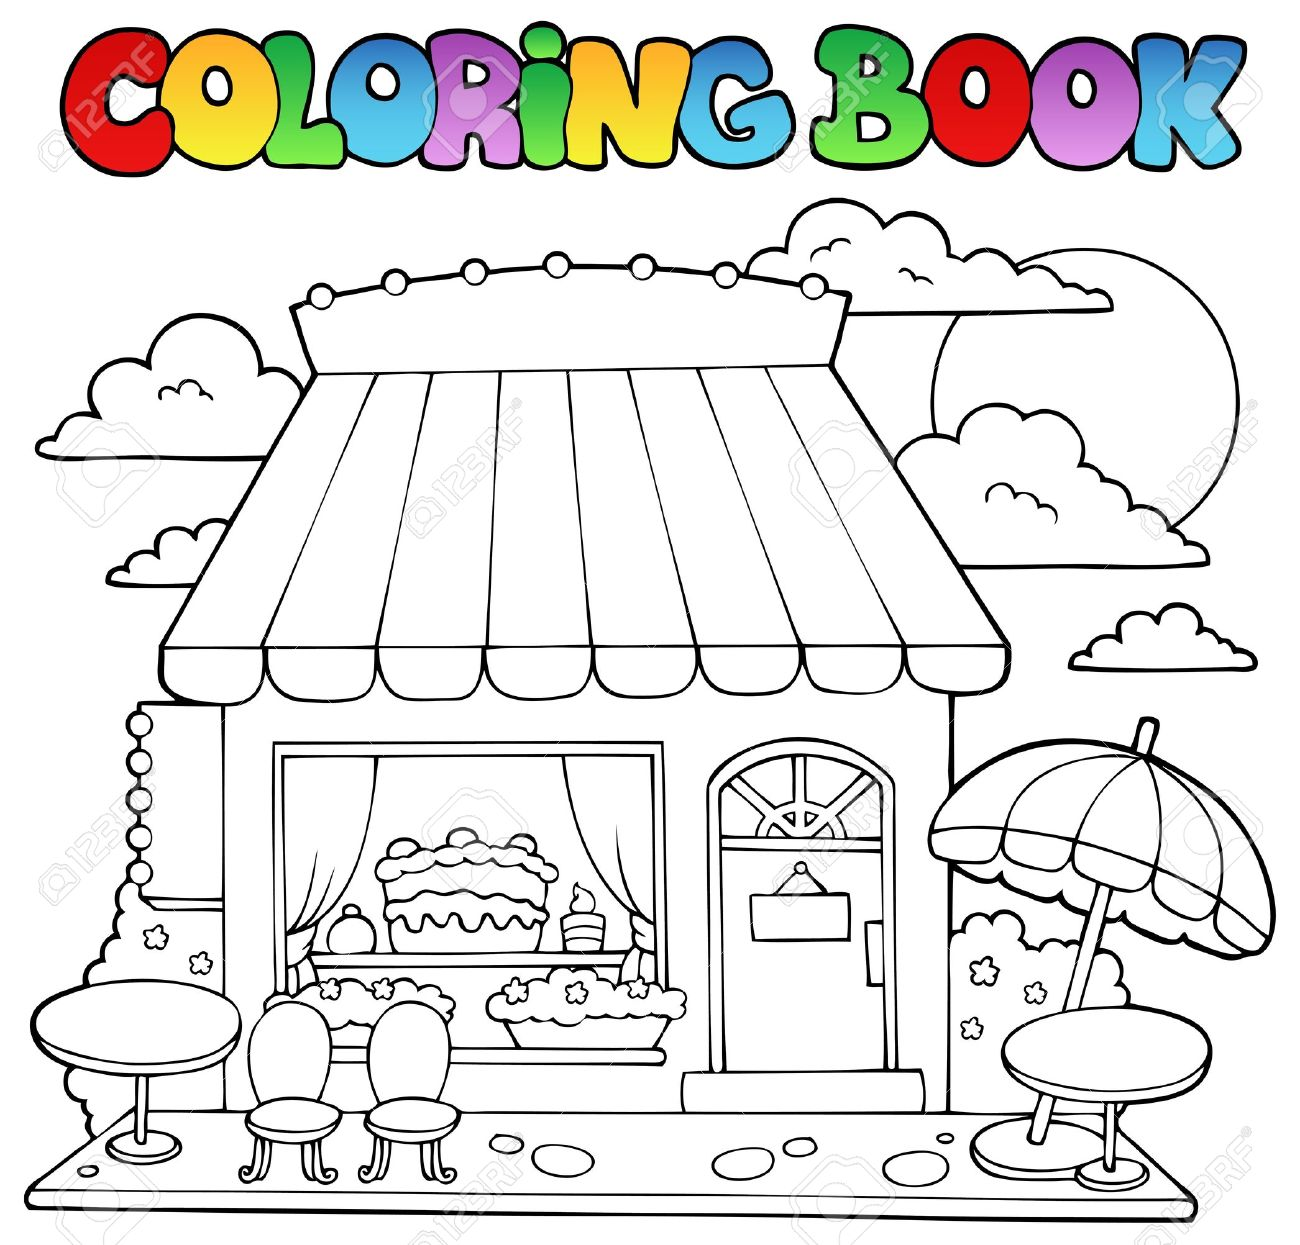 Coloring Book Cartoon Candy Store - Vector Illustration Royalty ...